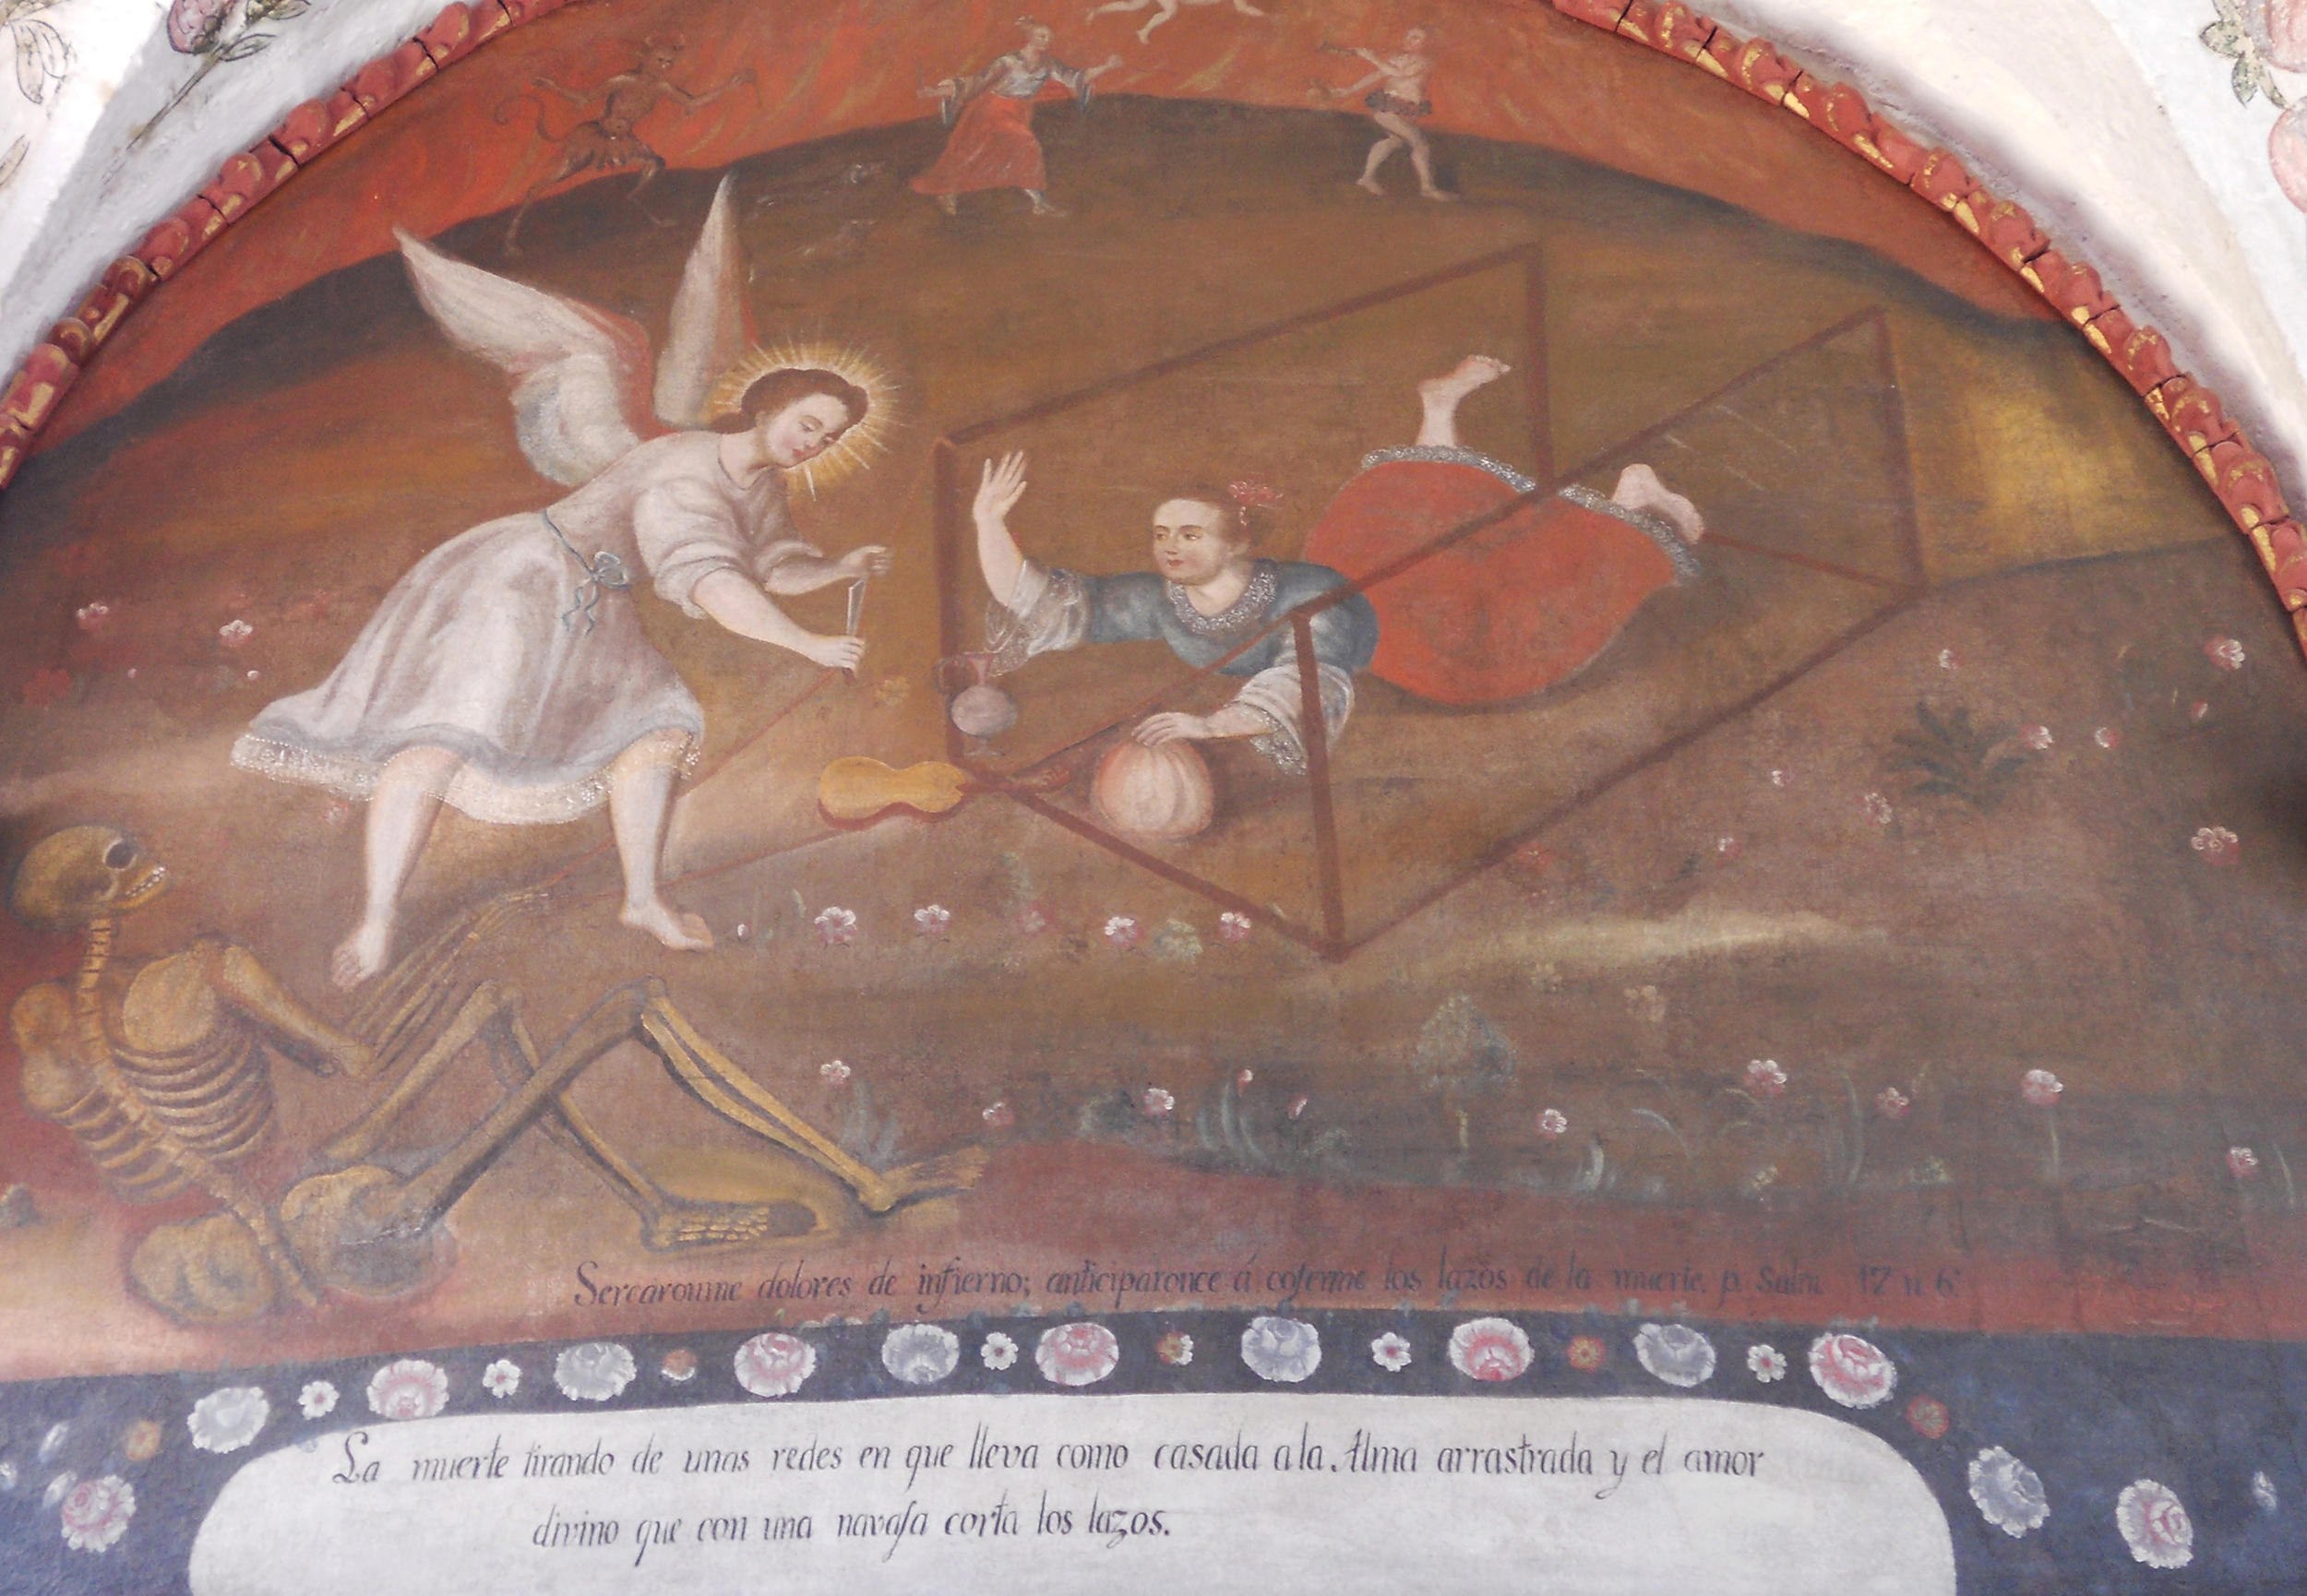 Fig. 28a La trampa del alma (The Trap of the Soul), 18th century, Convento de Santa Catalina (Arequipa). Photo by author. This scene is nearly identical to the mural at the Convento de la Merced, indicating that the artist also had access to the prints included in Suárez de Figueroa's text.